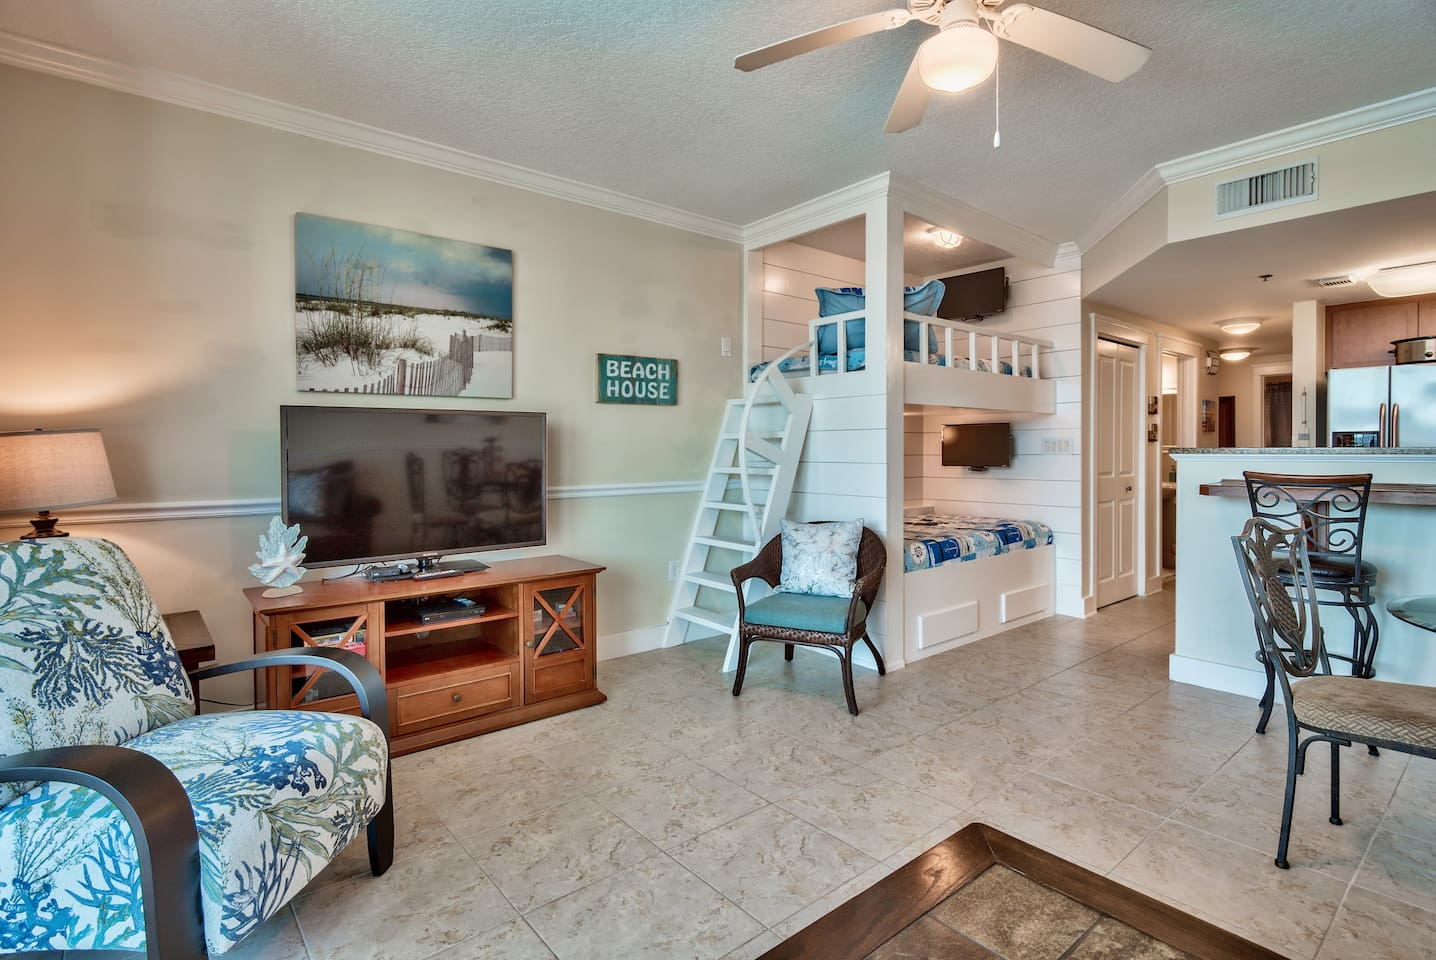 Designer bunk beds in the middle of everything. New accent chairs and furnishings. We are closed one bedroom to the beach at the Resort.